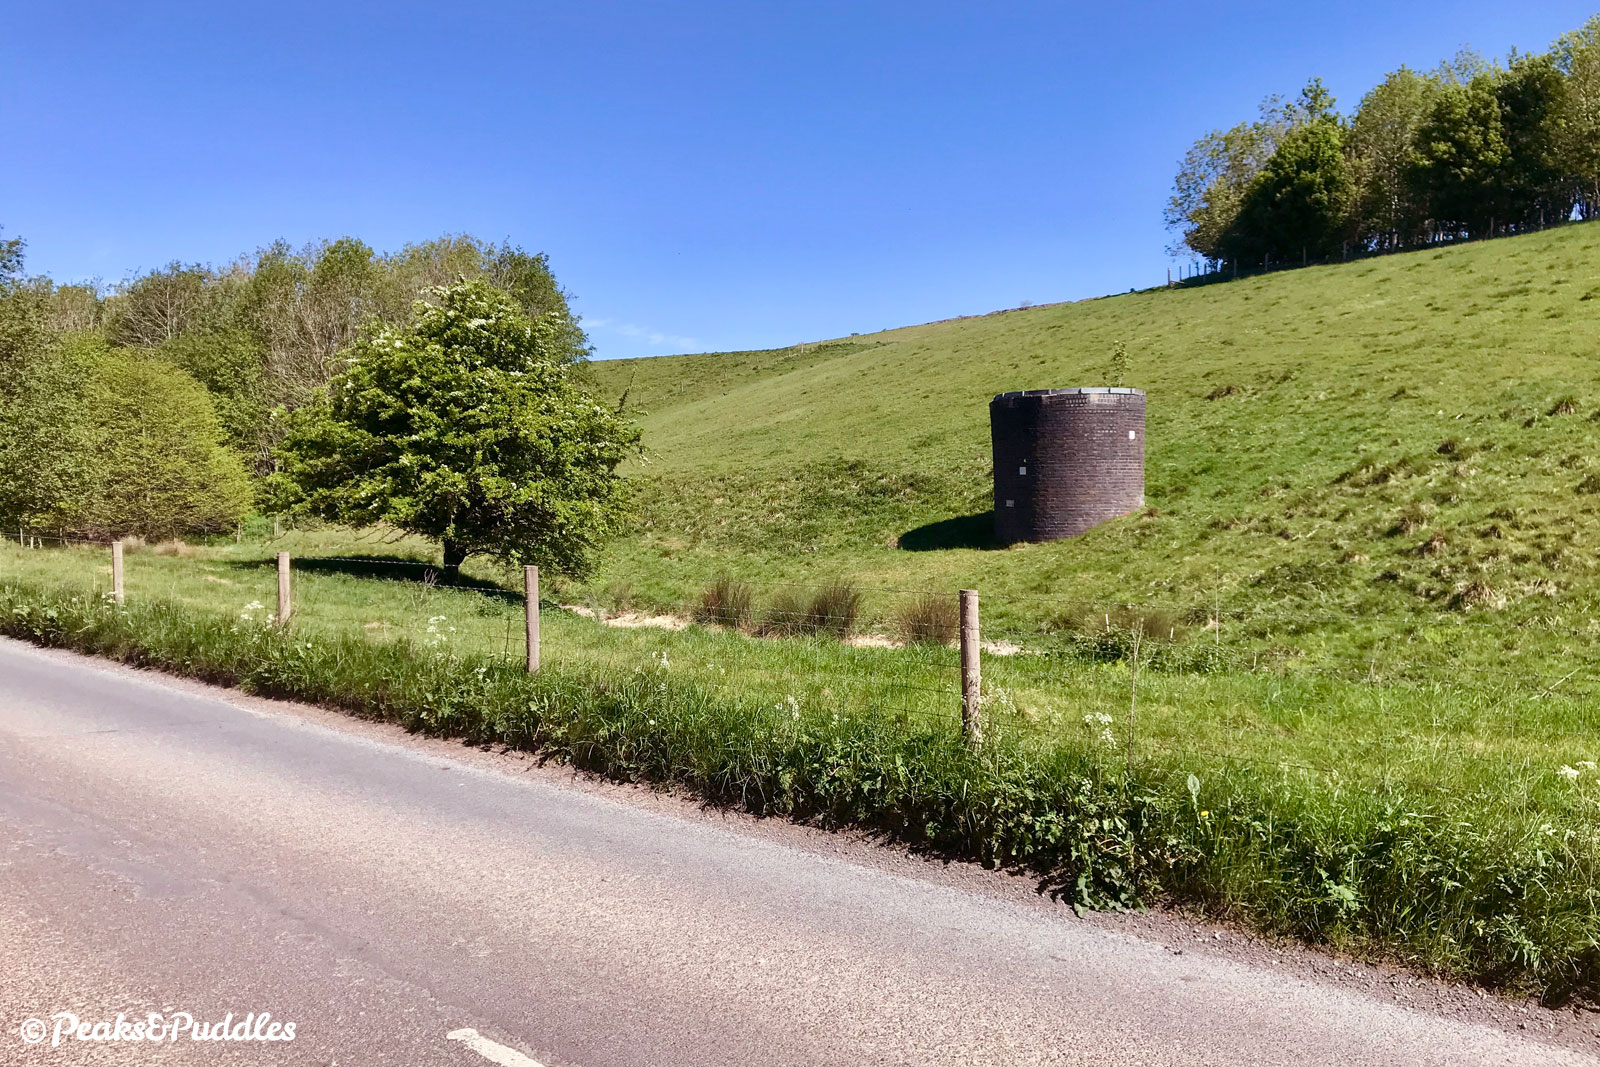 Beside Dale Road between Peak Dale and Dove Holes, the first ventilation shafts of the Dove Holes Tunnel can be spotted. These are eerily similar to those of the Disley Tunnel, on the same line.